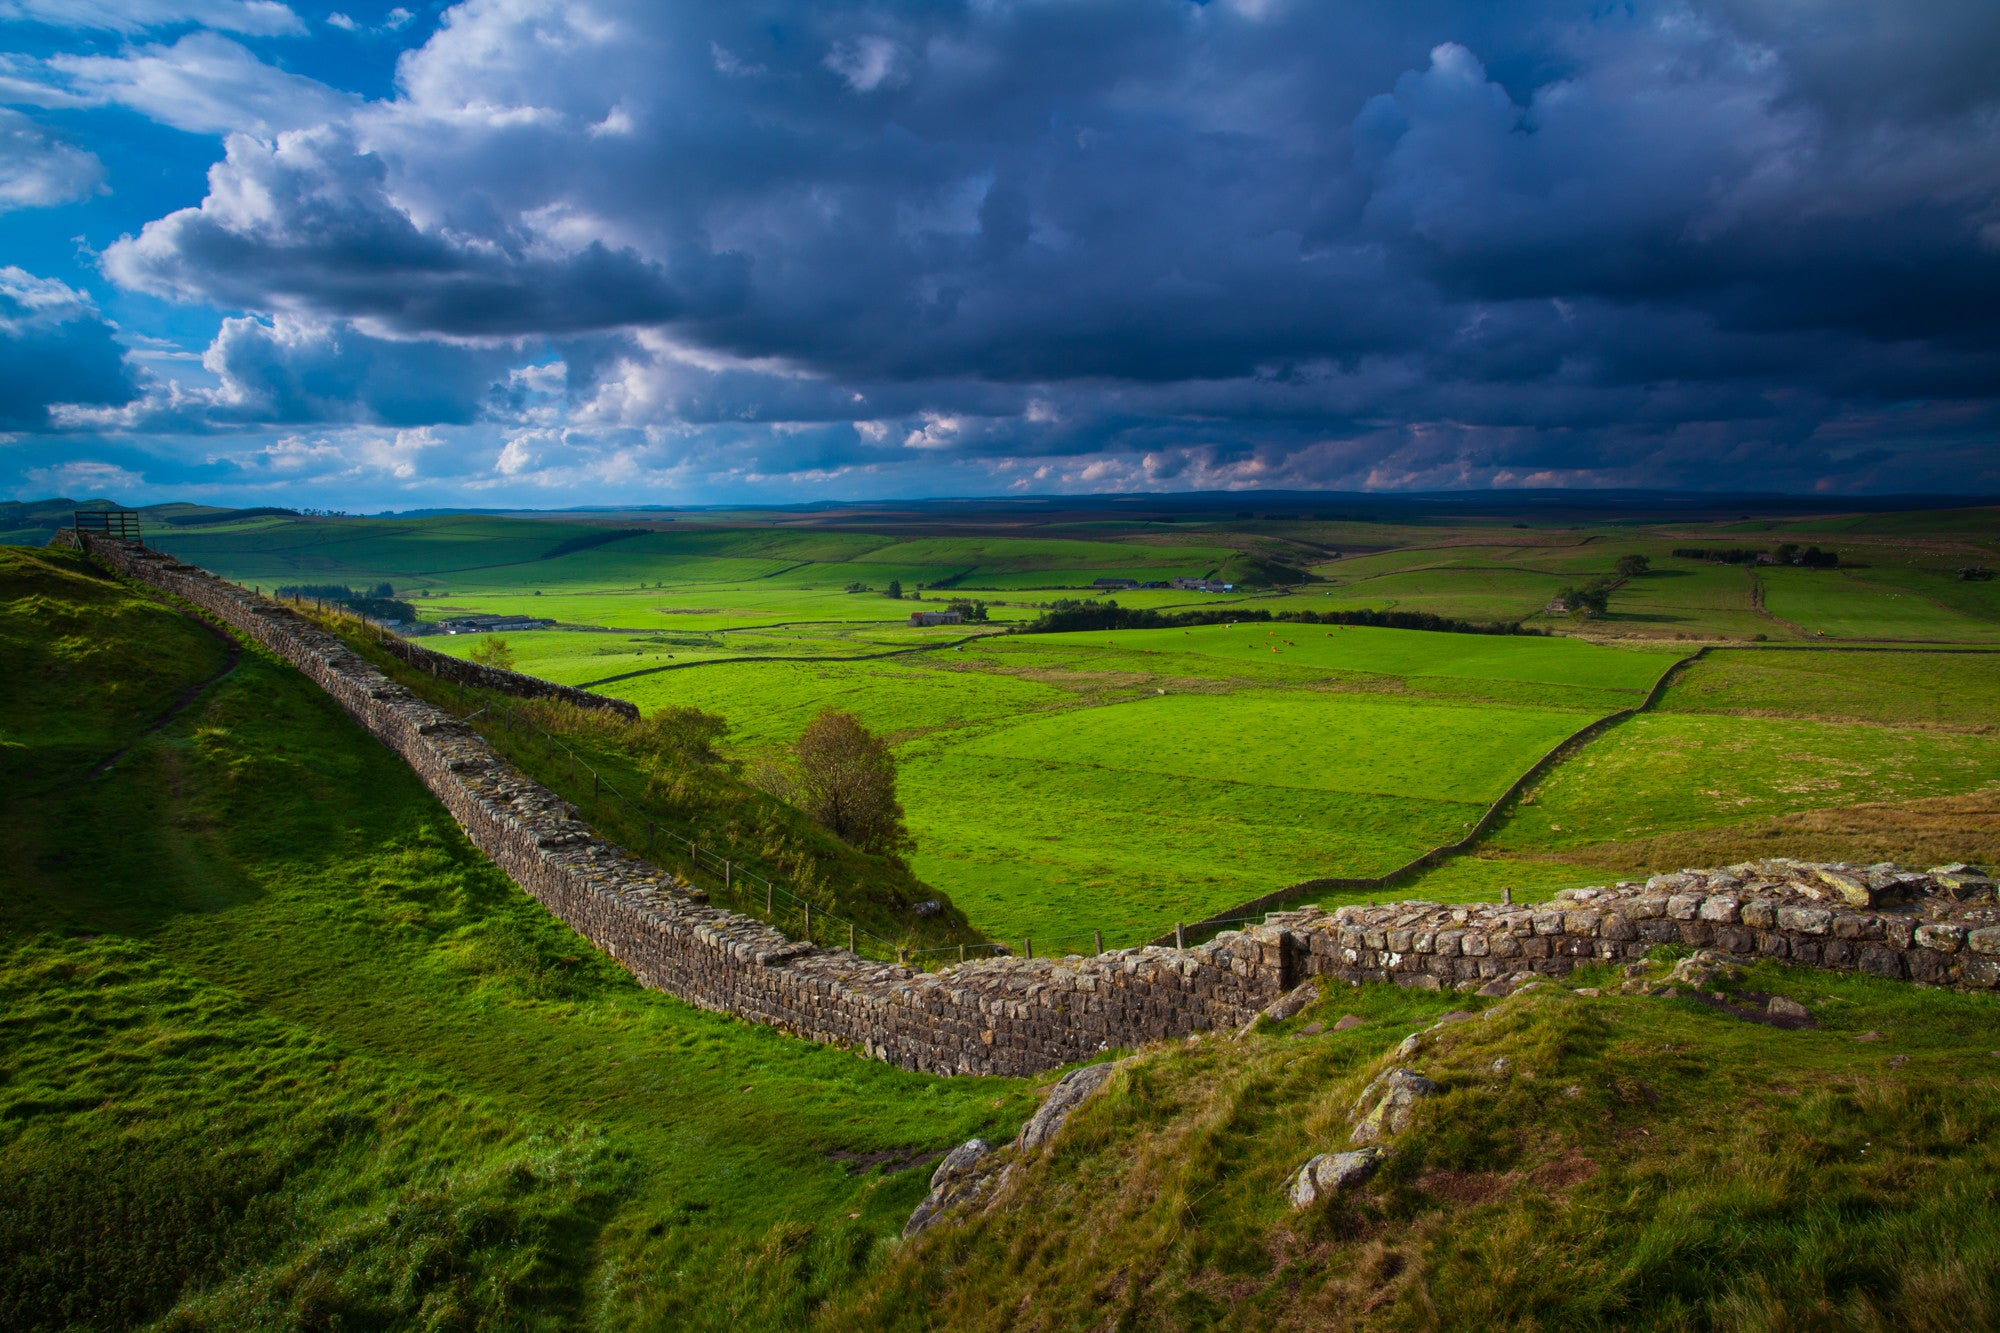 "Hadrian's Wall at Caw Gap, Northumberland, 22""x18"" (58x48cm) Framed Photography Print"